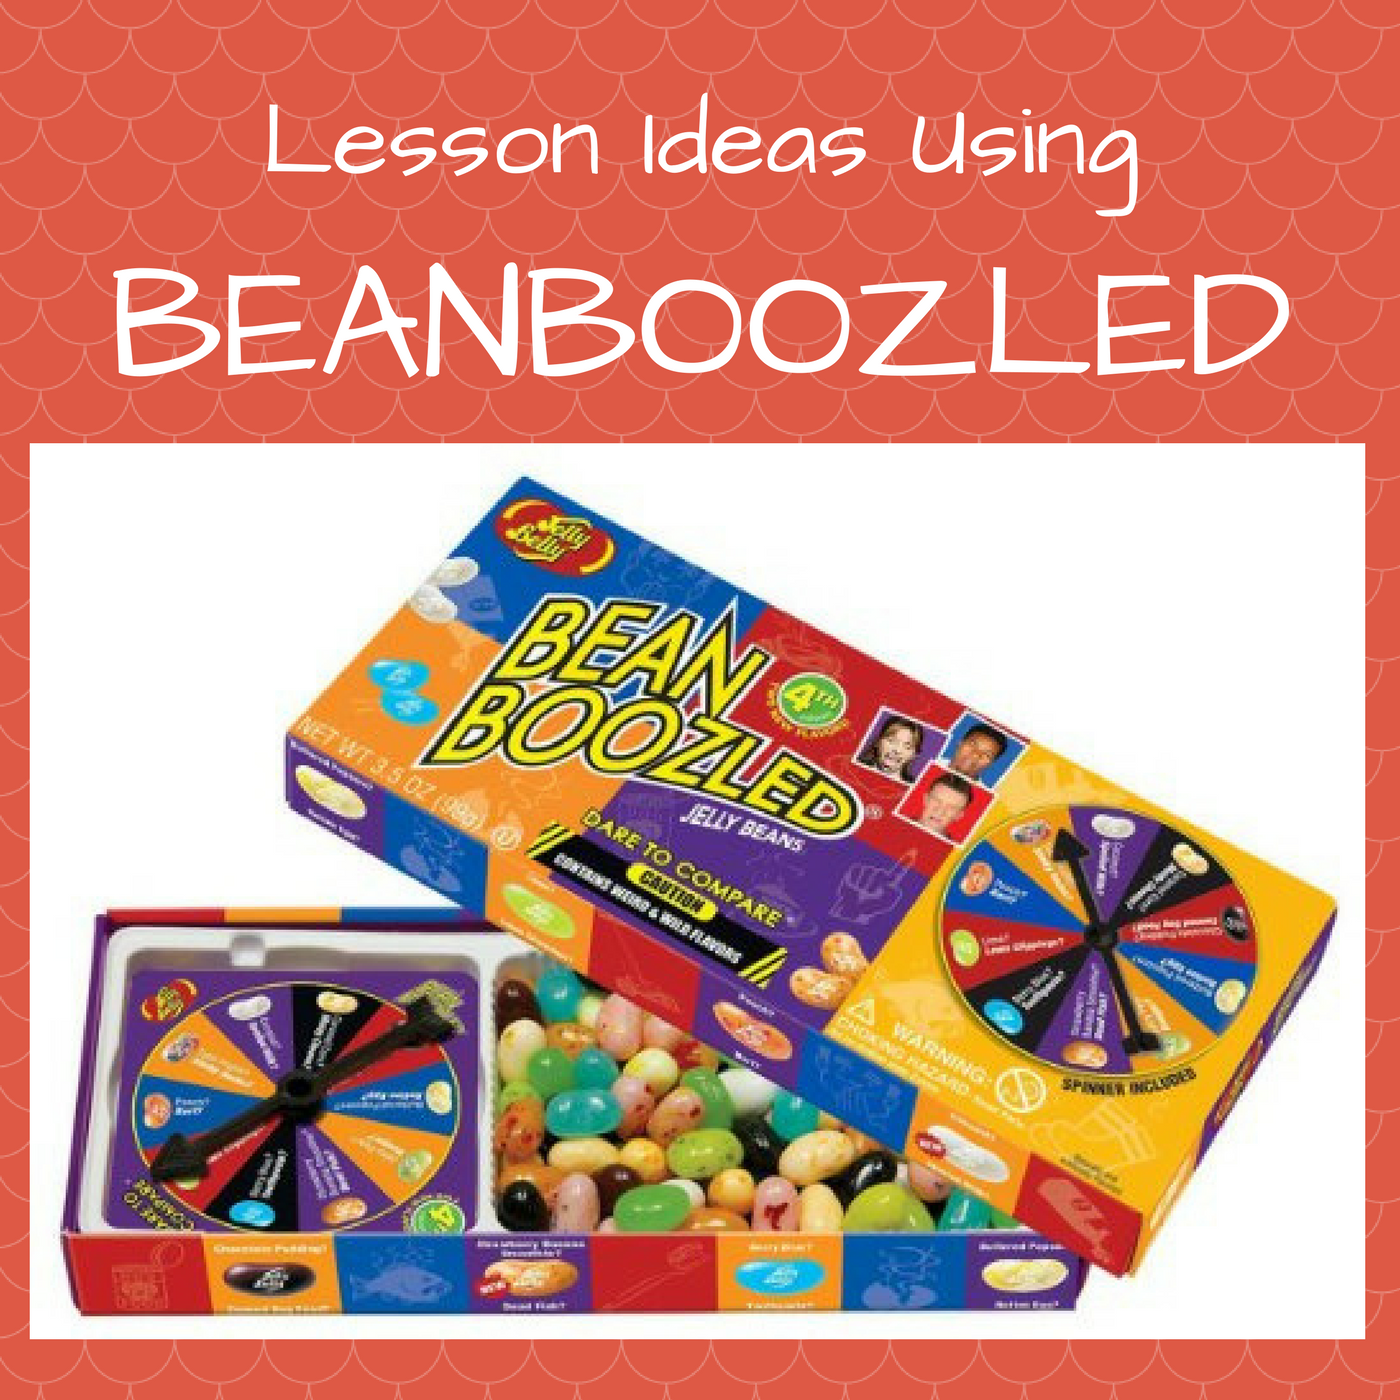 Play Beanboozled With Your Kids And Teach Them Valuable Lessons About Judging Others Making Wise Friends Jelly Bean Gifts Jelly Belly Bean Boozled Jelly Beans